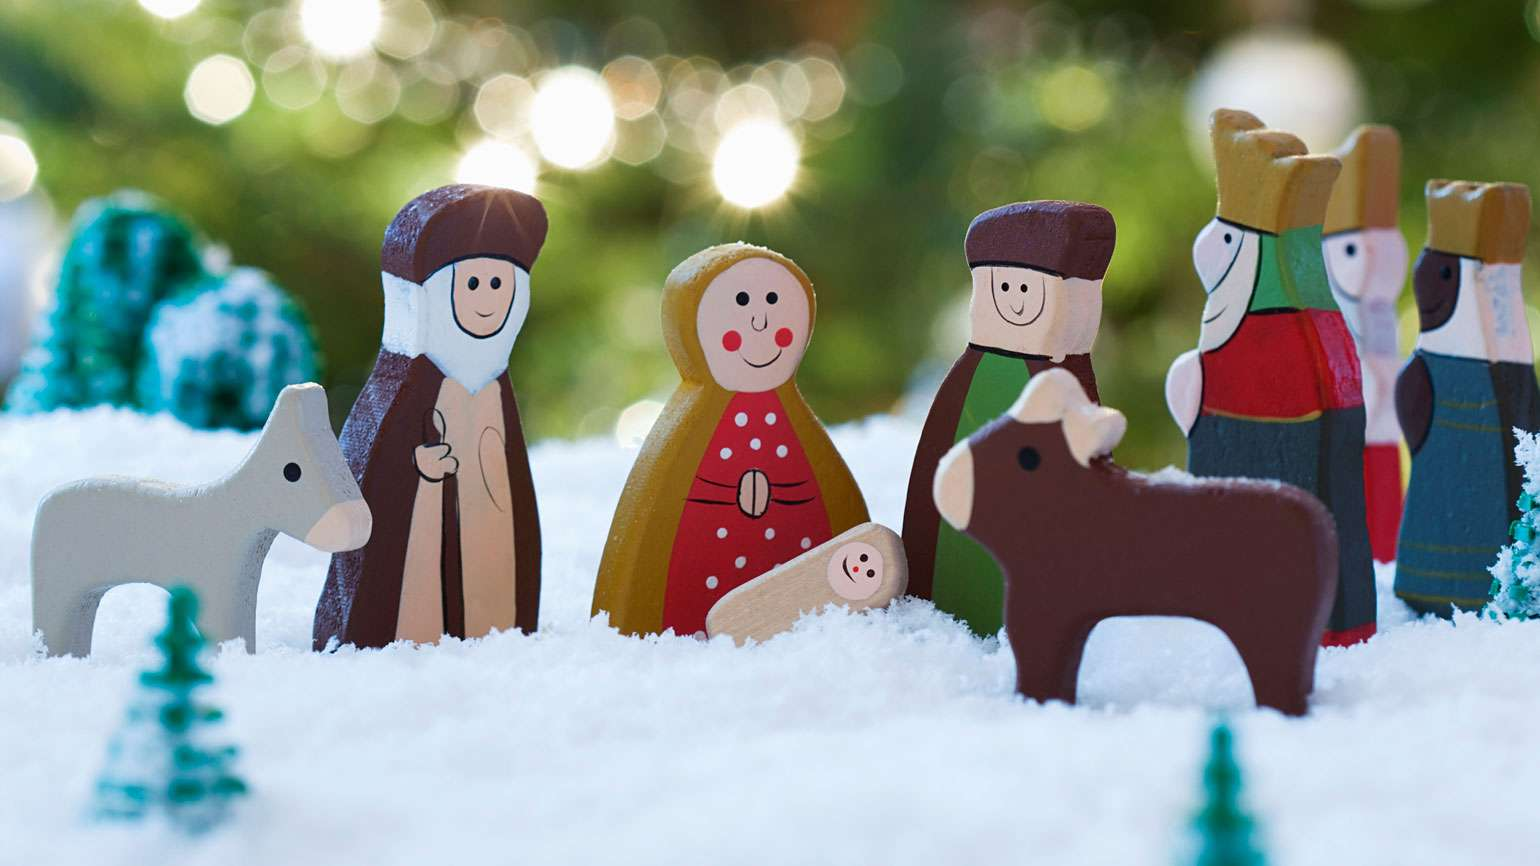 A wooden nativity set, with a colorful Christmas tree behind it